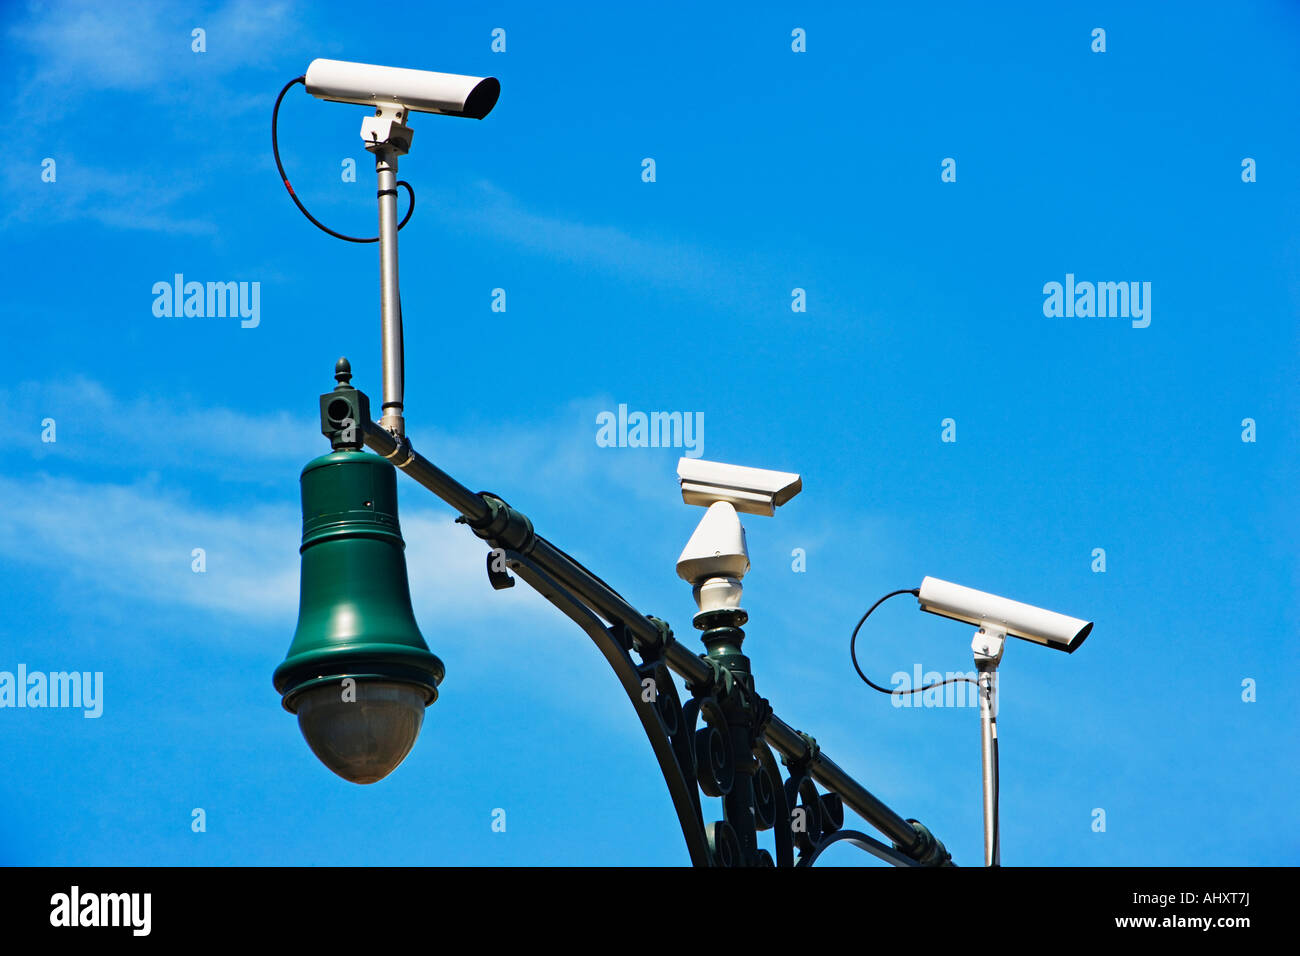 Security cameras on lamp post - Stock Image